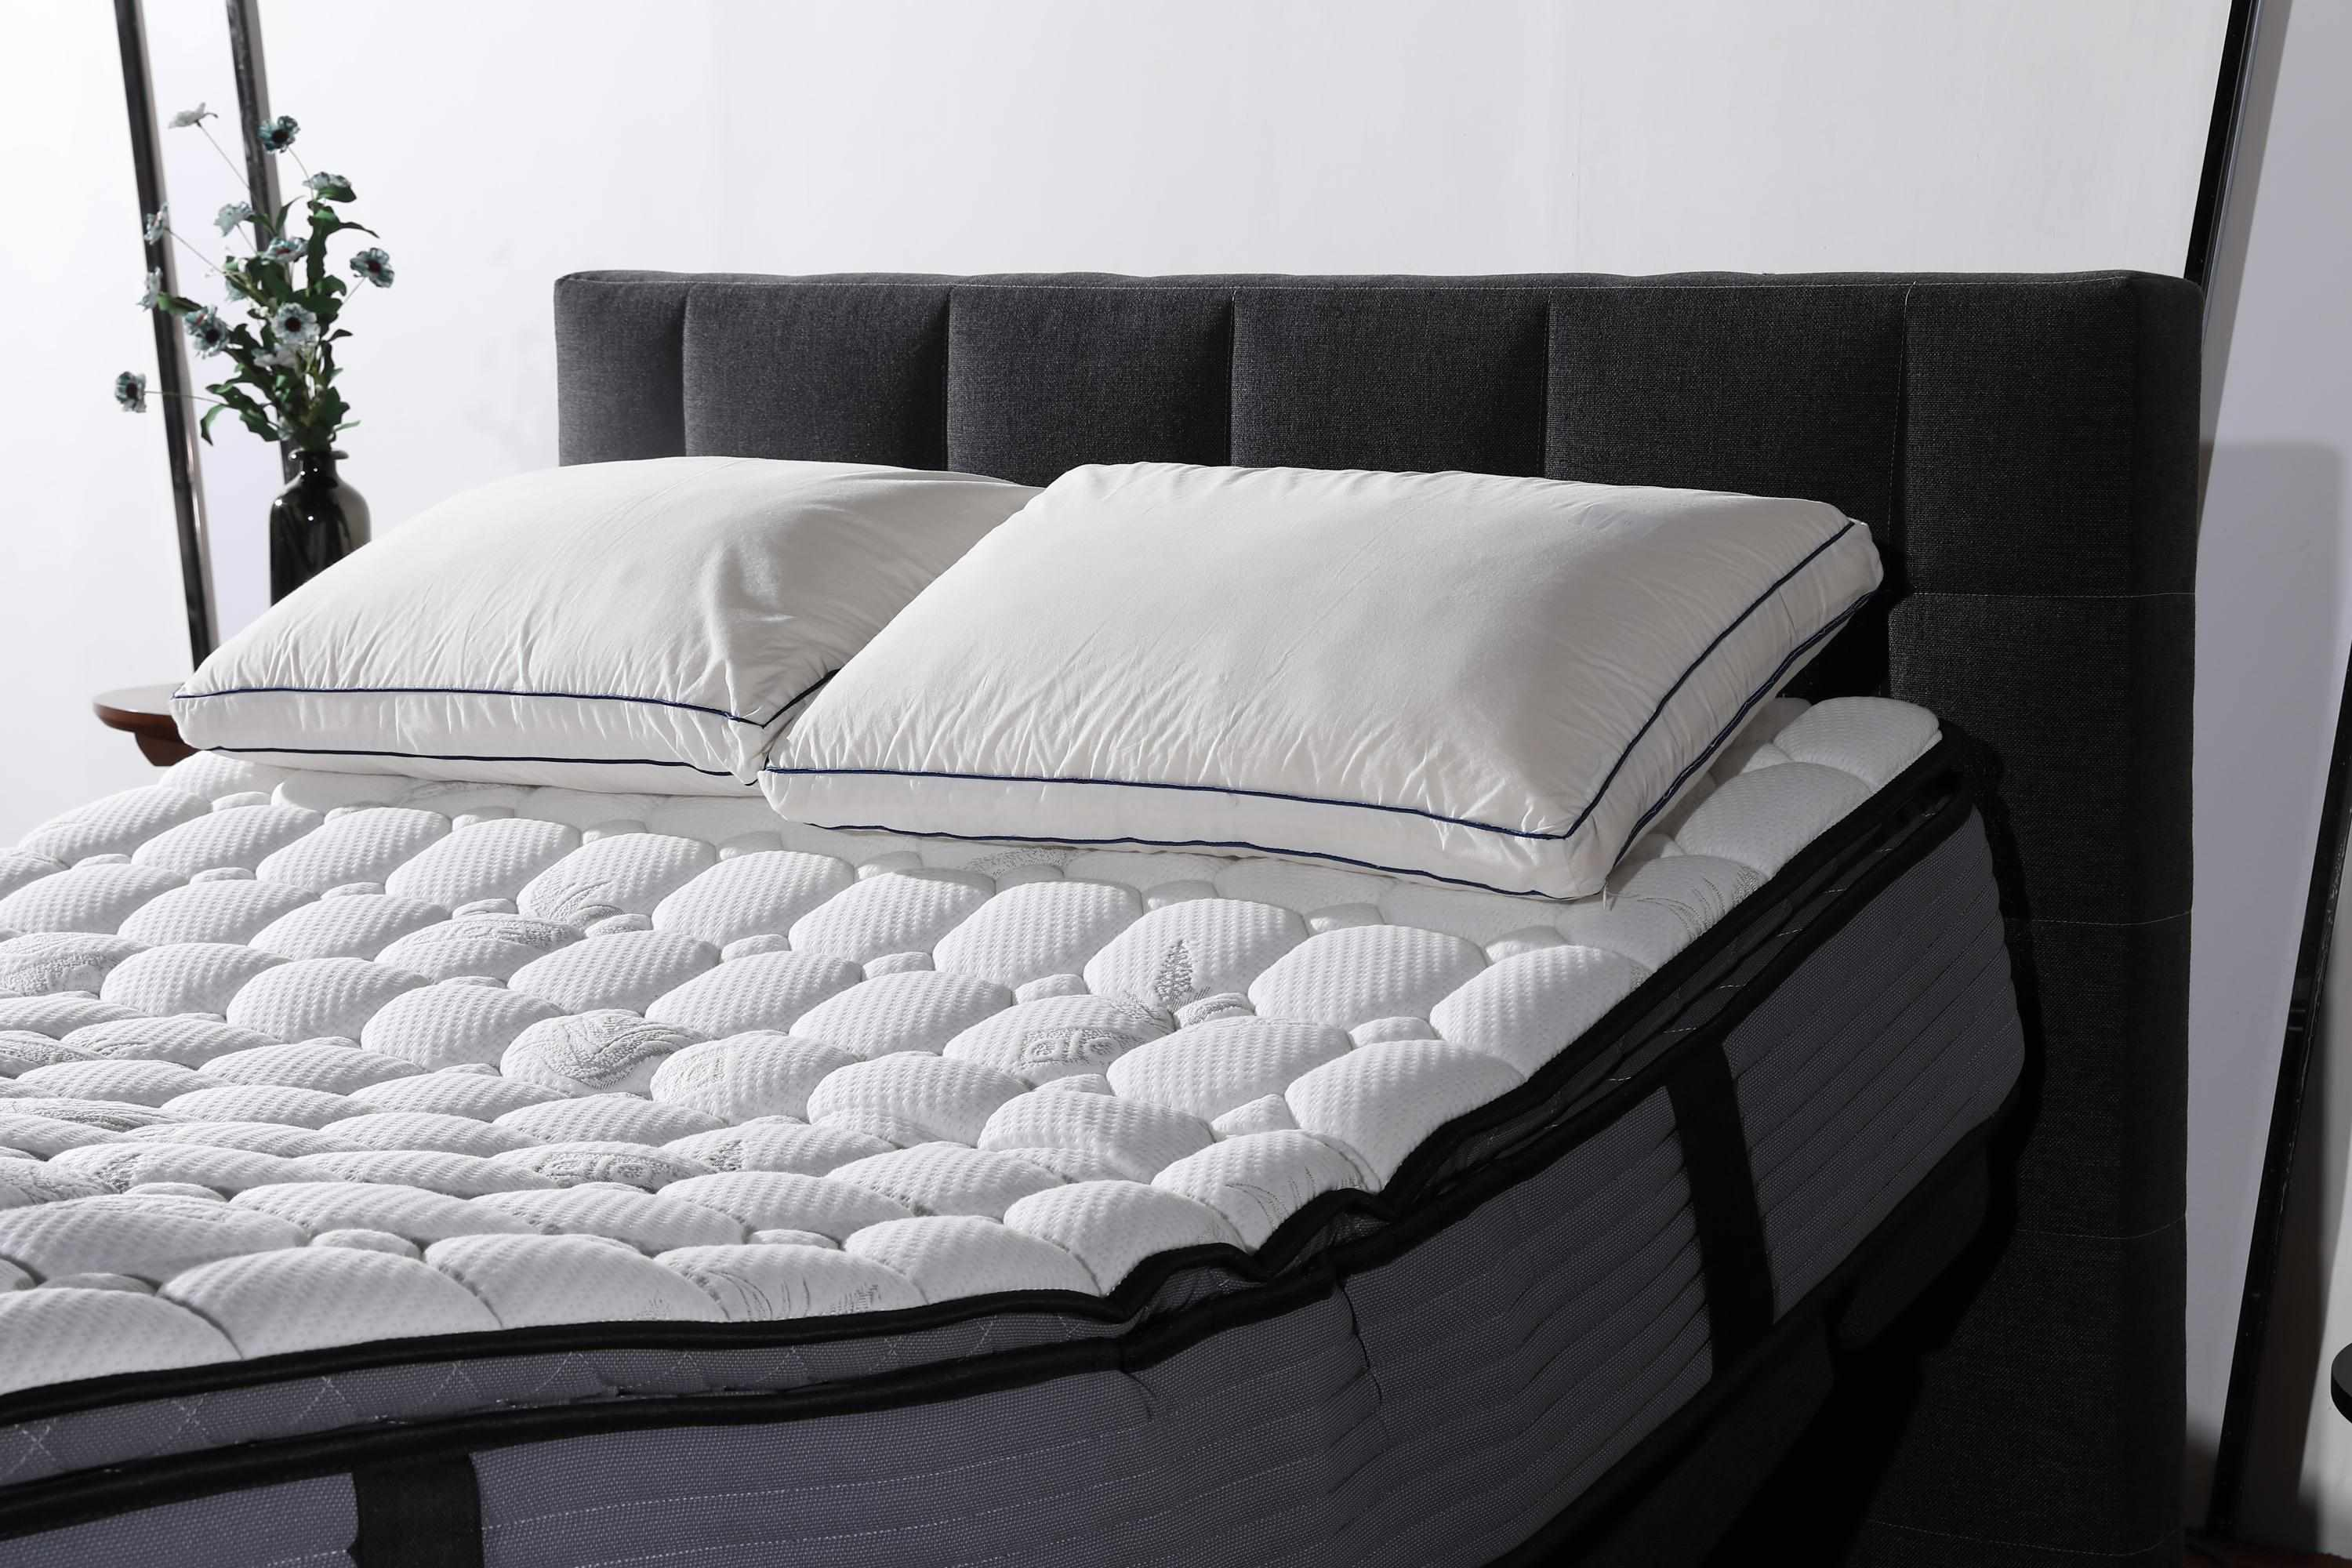 JLH Pillow Top Design Electric Adjustable Bed with Quiet and Stable Motor in King Queen Size Mattress In A Box image2